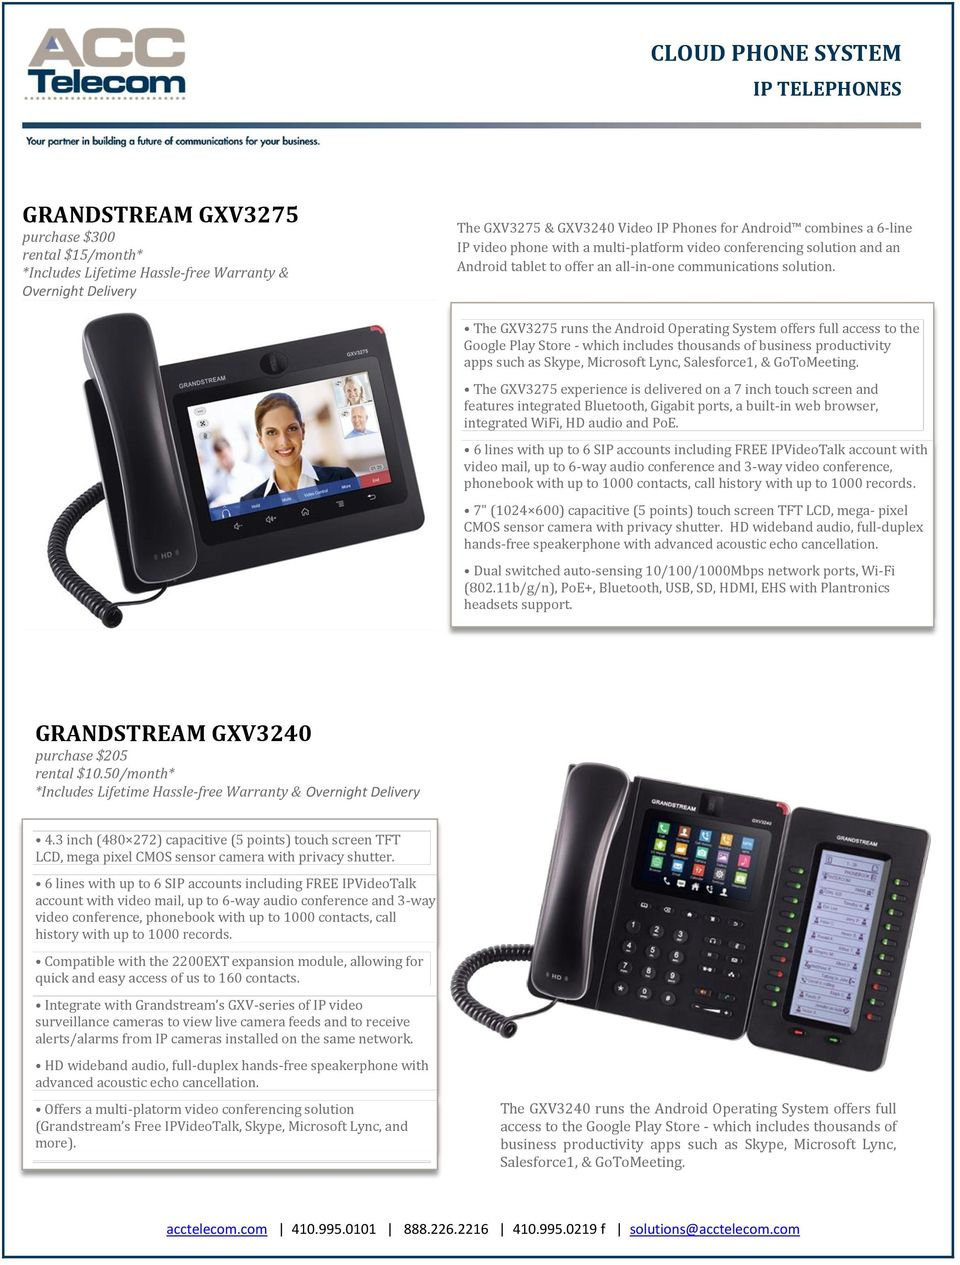 The GXV3275 runs the Android Operating System offers full access to the Google Play Store - which includes thousands of business productivity apps such as Skype, Microsoft Lync, Salesforce1, &